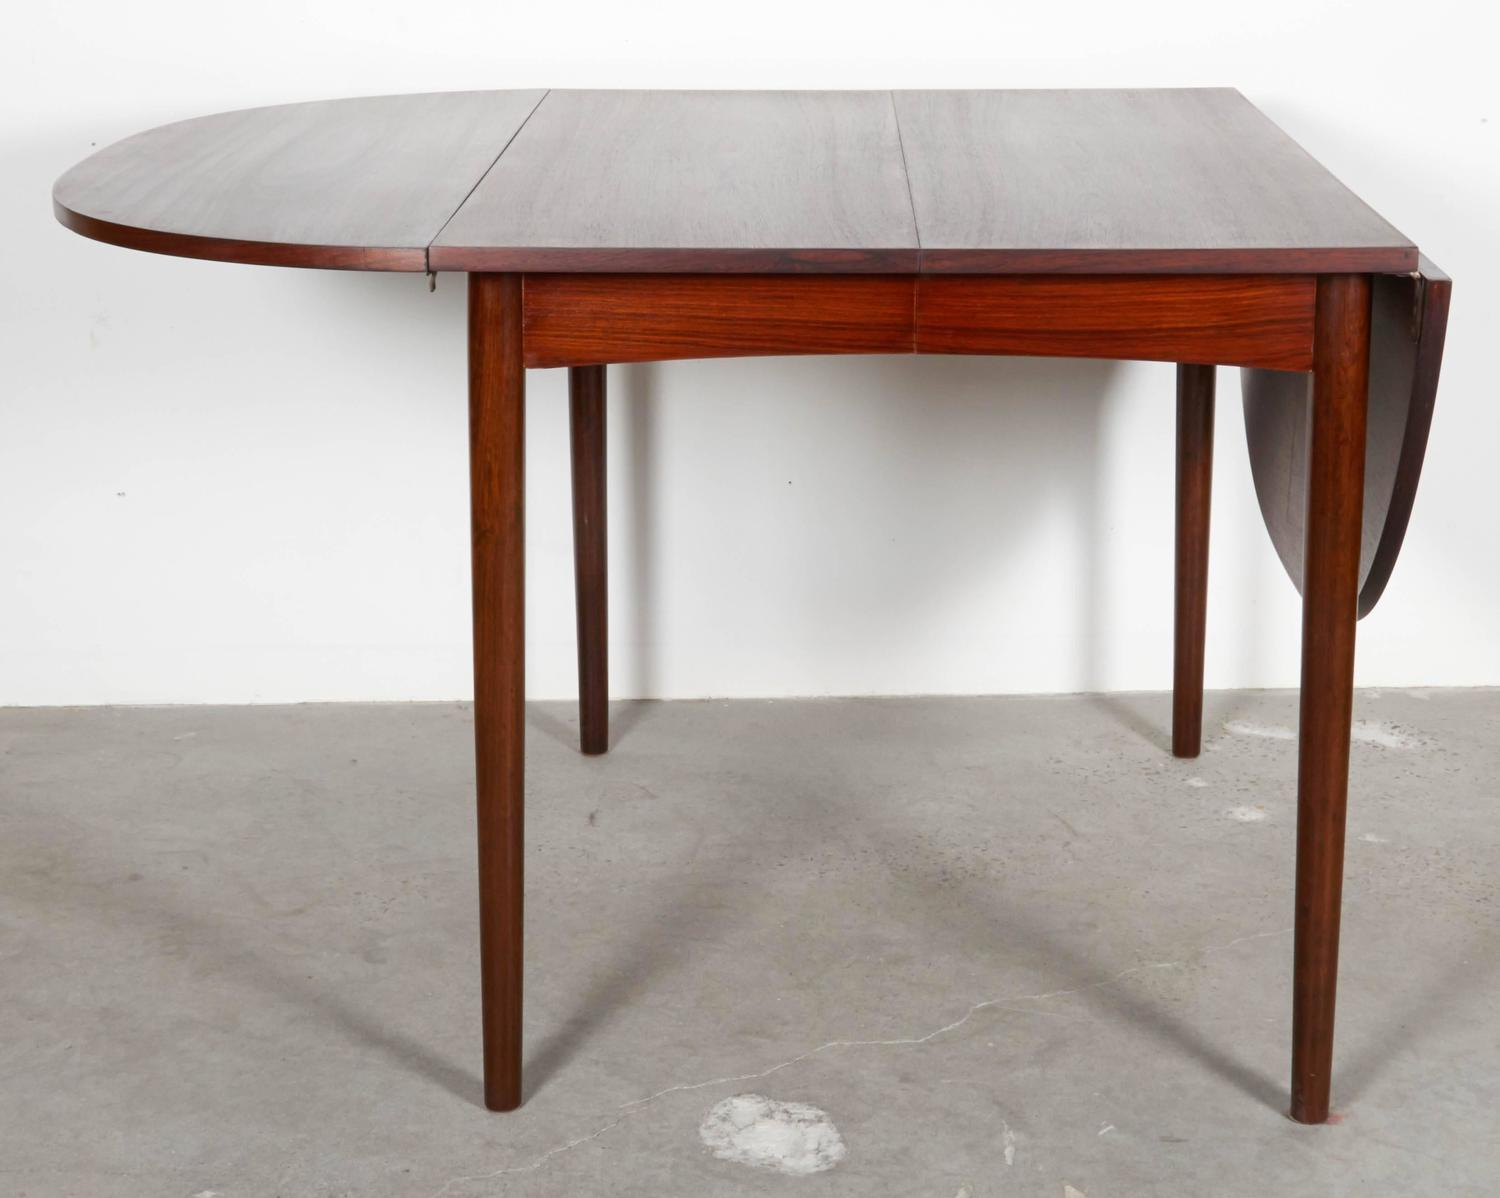 Rosewood Drop Leaf Dining Table at 1stdibs : IMG4145z from www.1stdibs.com size 1500 x 1198 jpeg 95kB